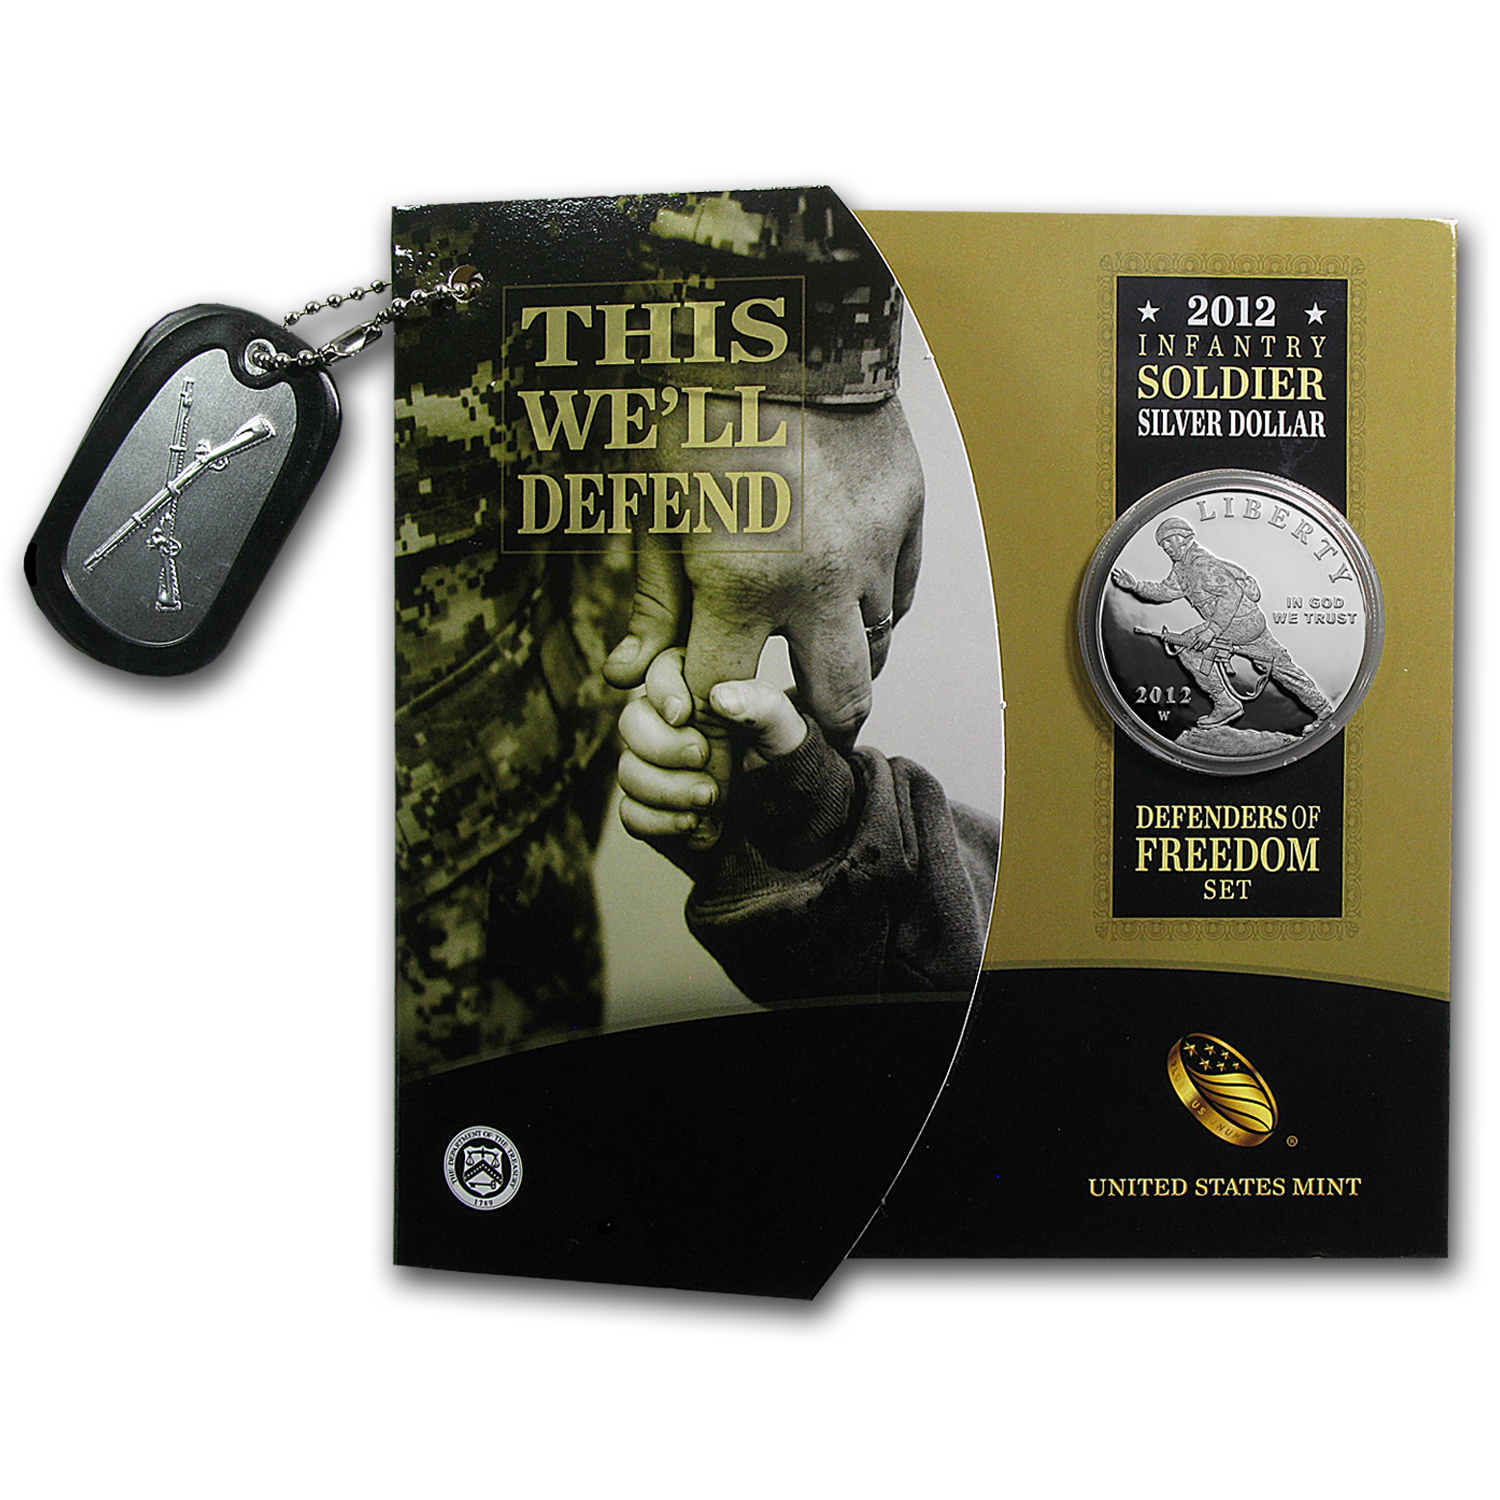 2012 Infantry/Defenders of Freedom $1 Silver Commem Pf Set (Book)